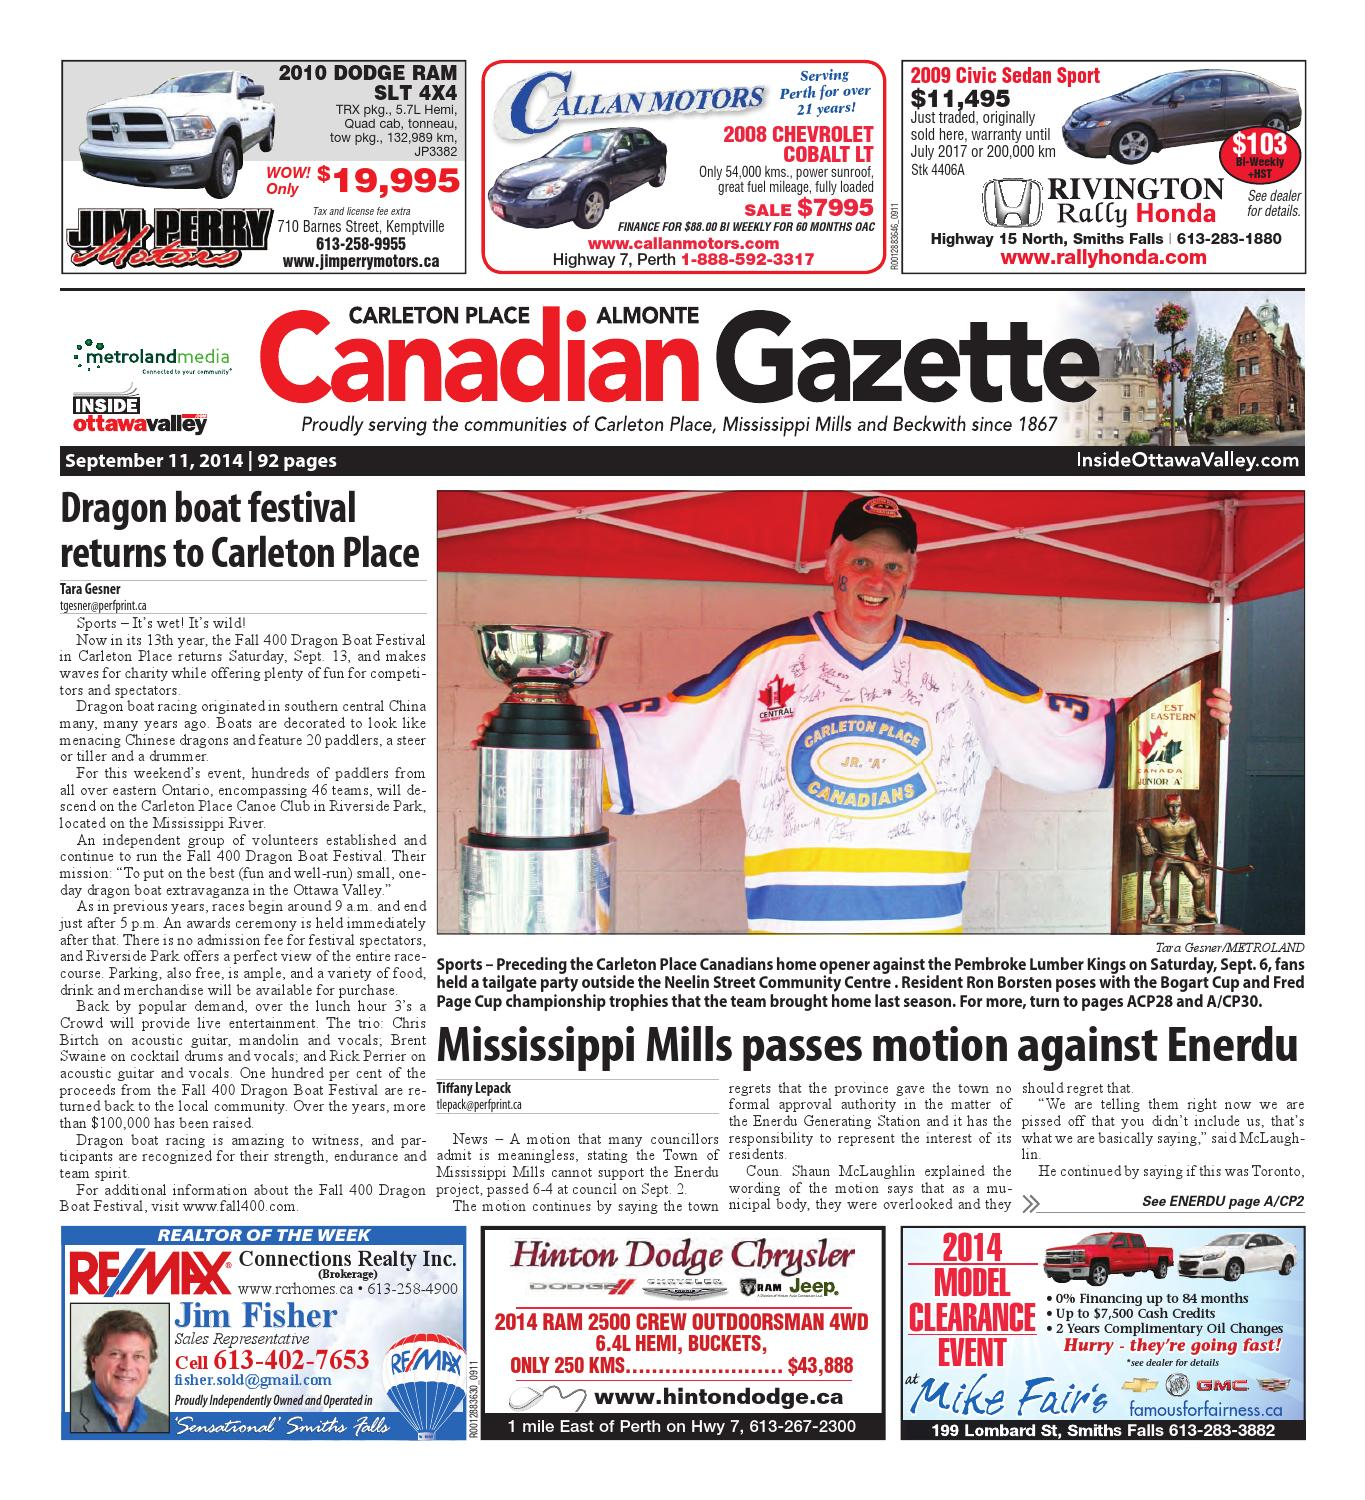 Almontecarletonplace091114 by Metroland East - Almonte Carleton Place  Canadian Gazette - issuu e44450a1aae7